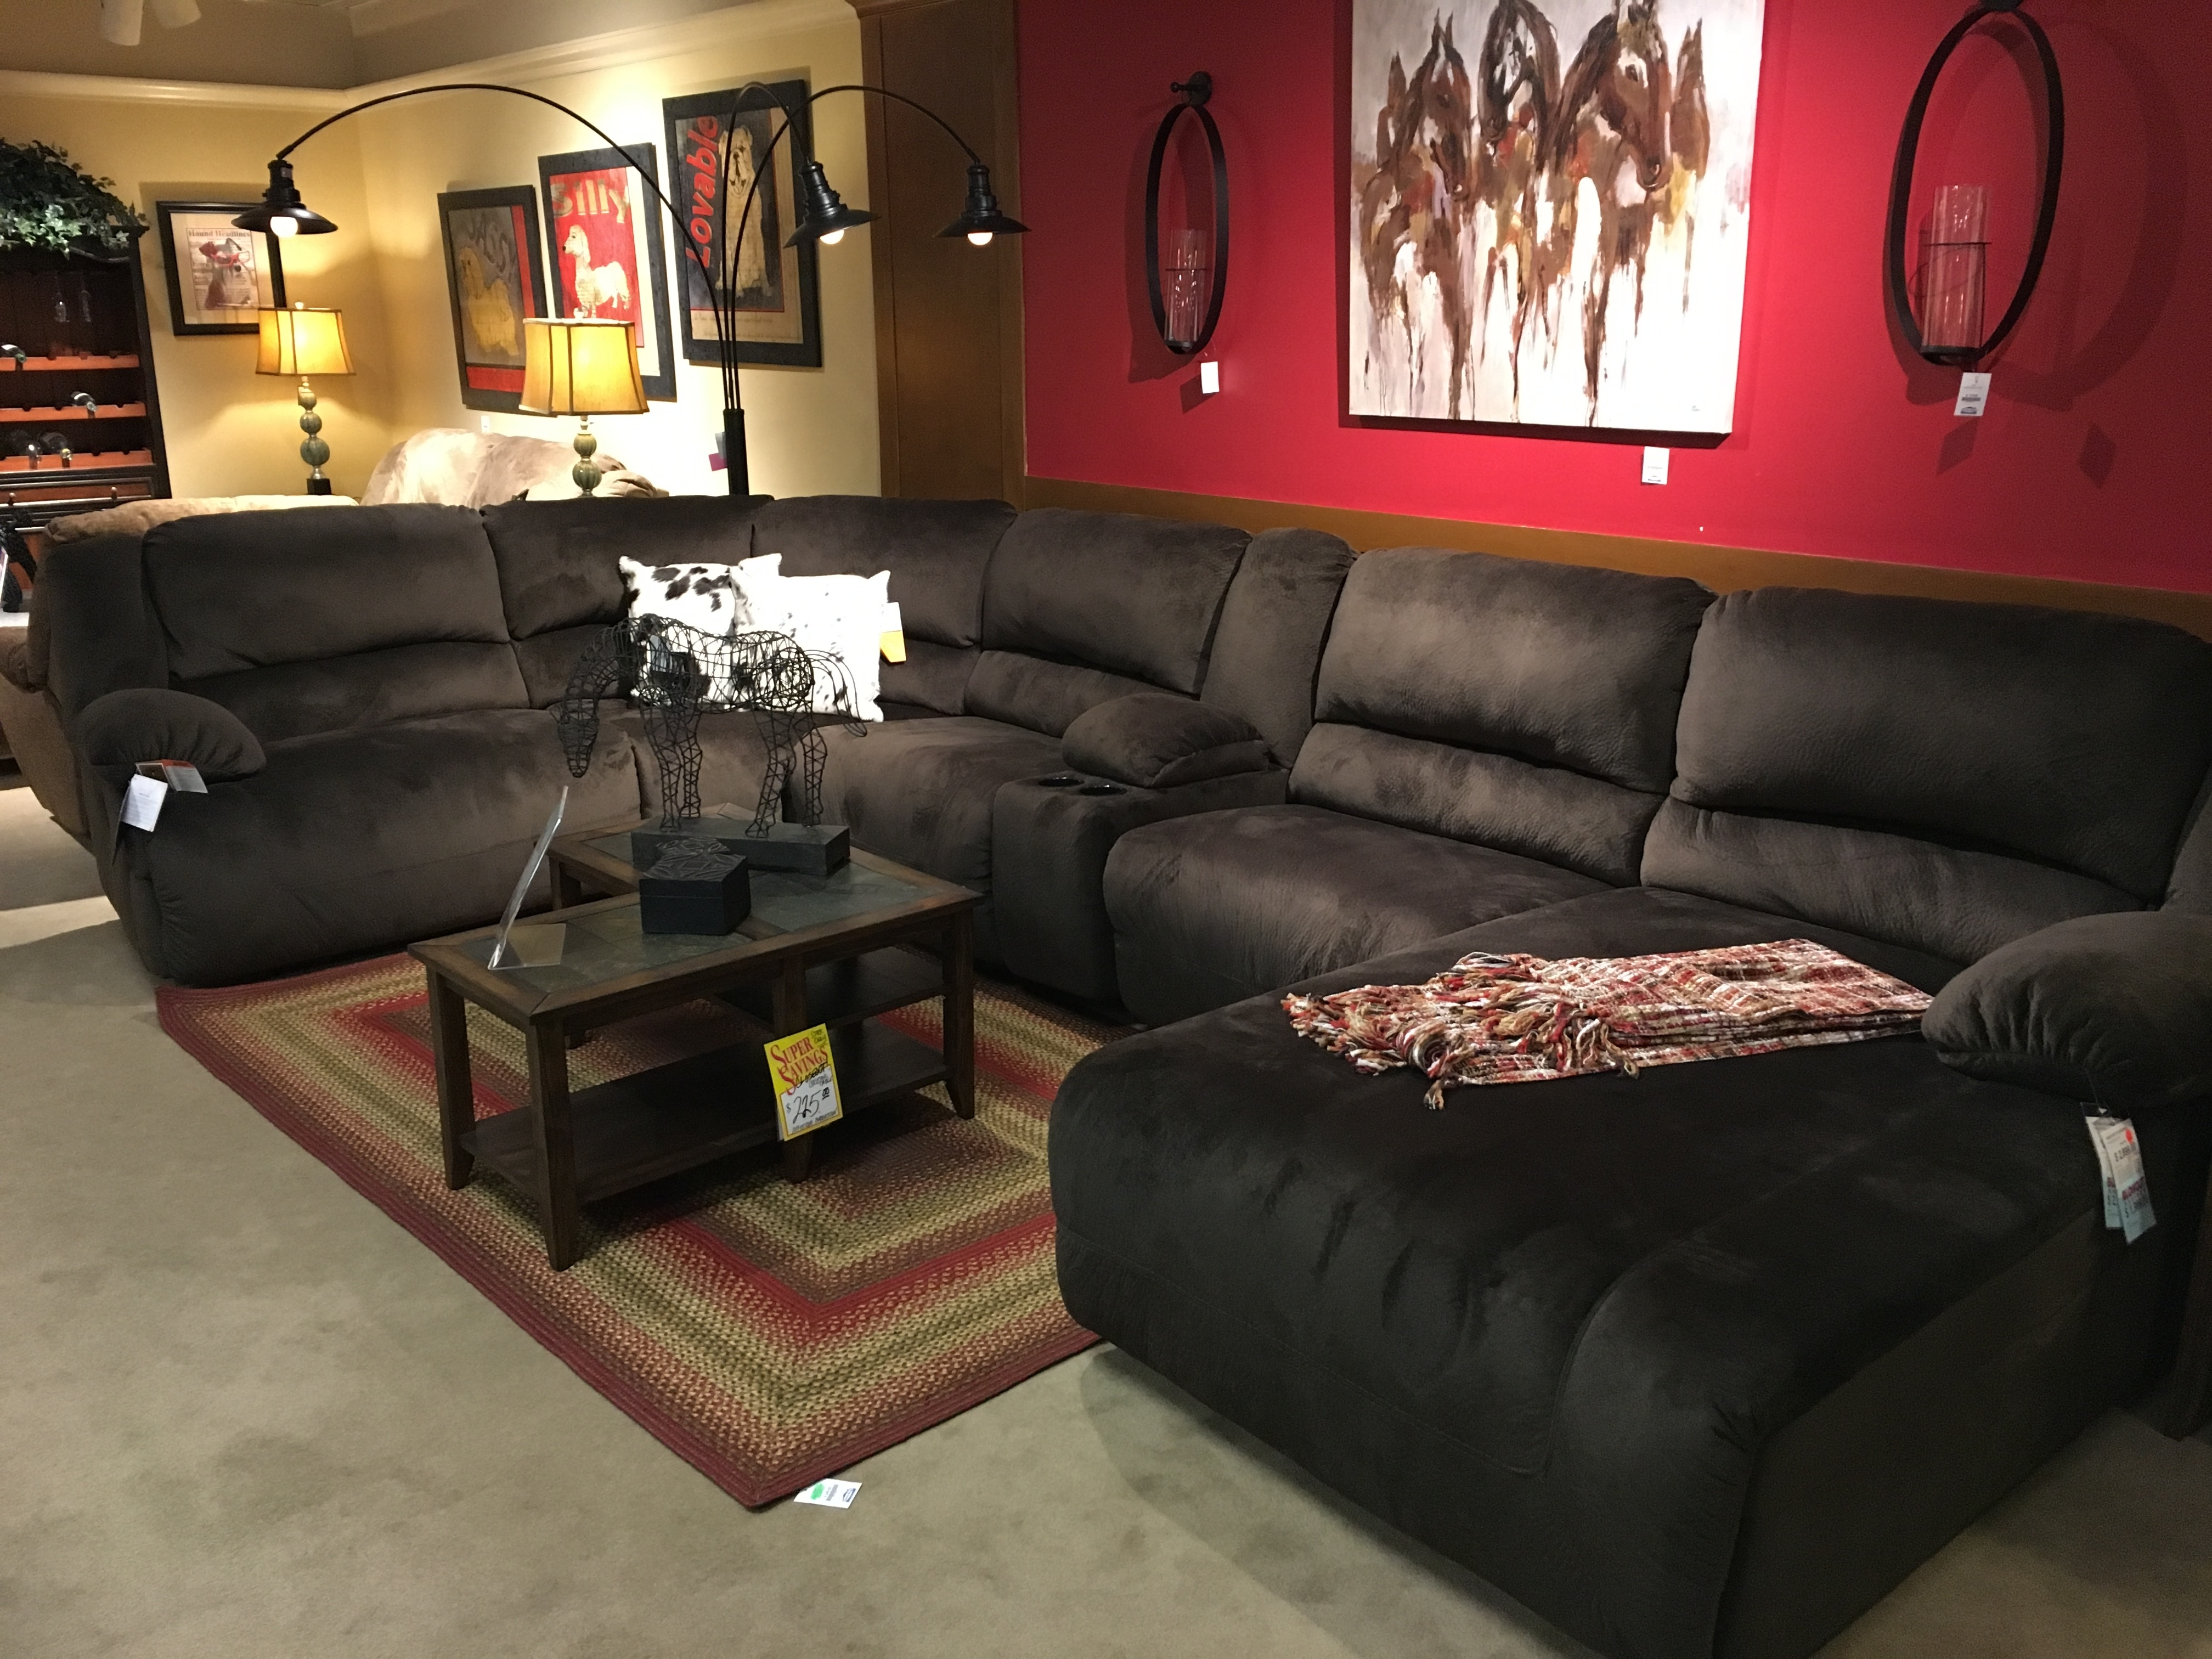 Popular Photo of Sectional Sofas At Bad Boy